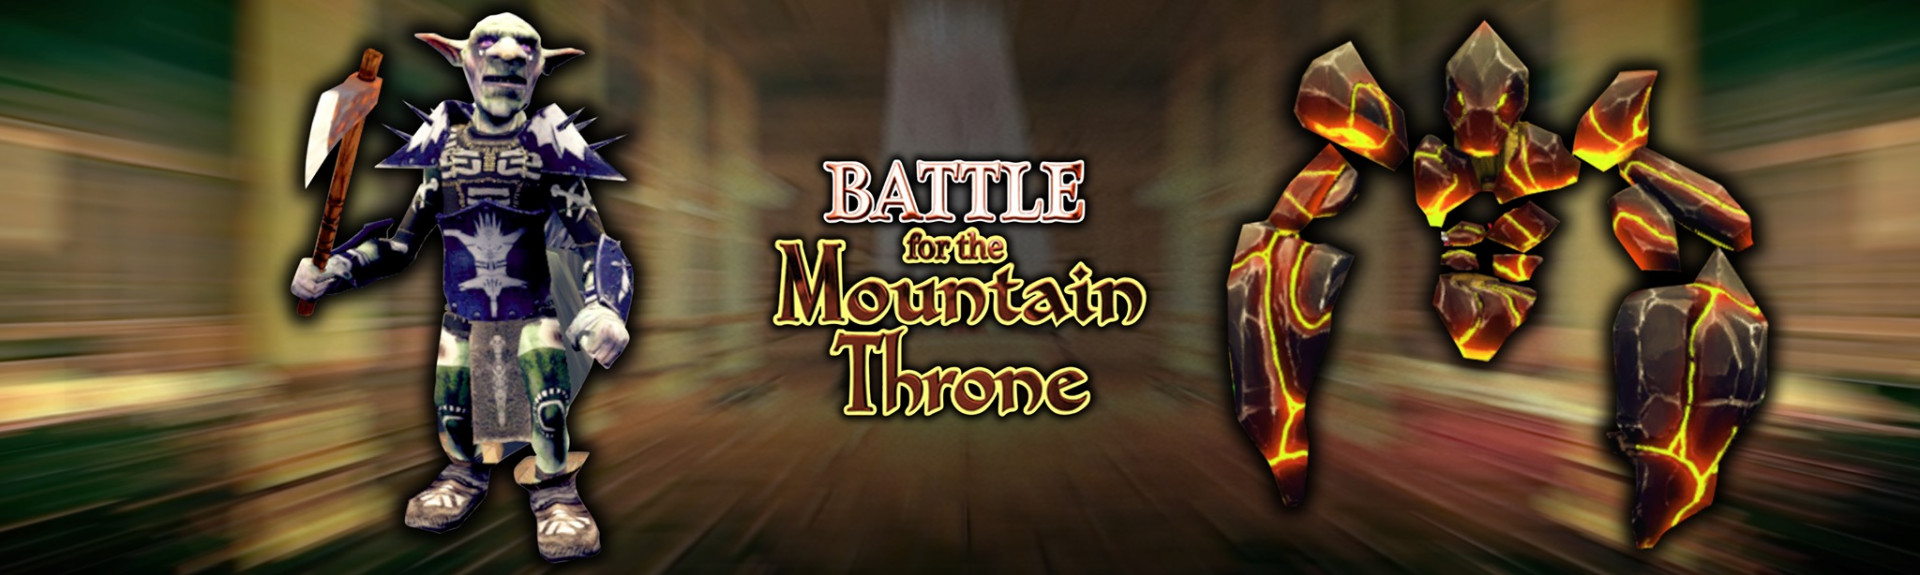 Battle for the Mountain Throne